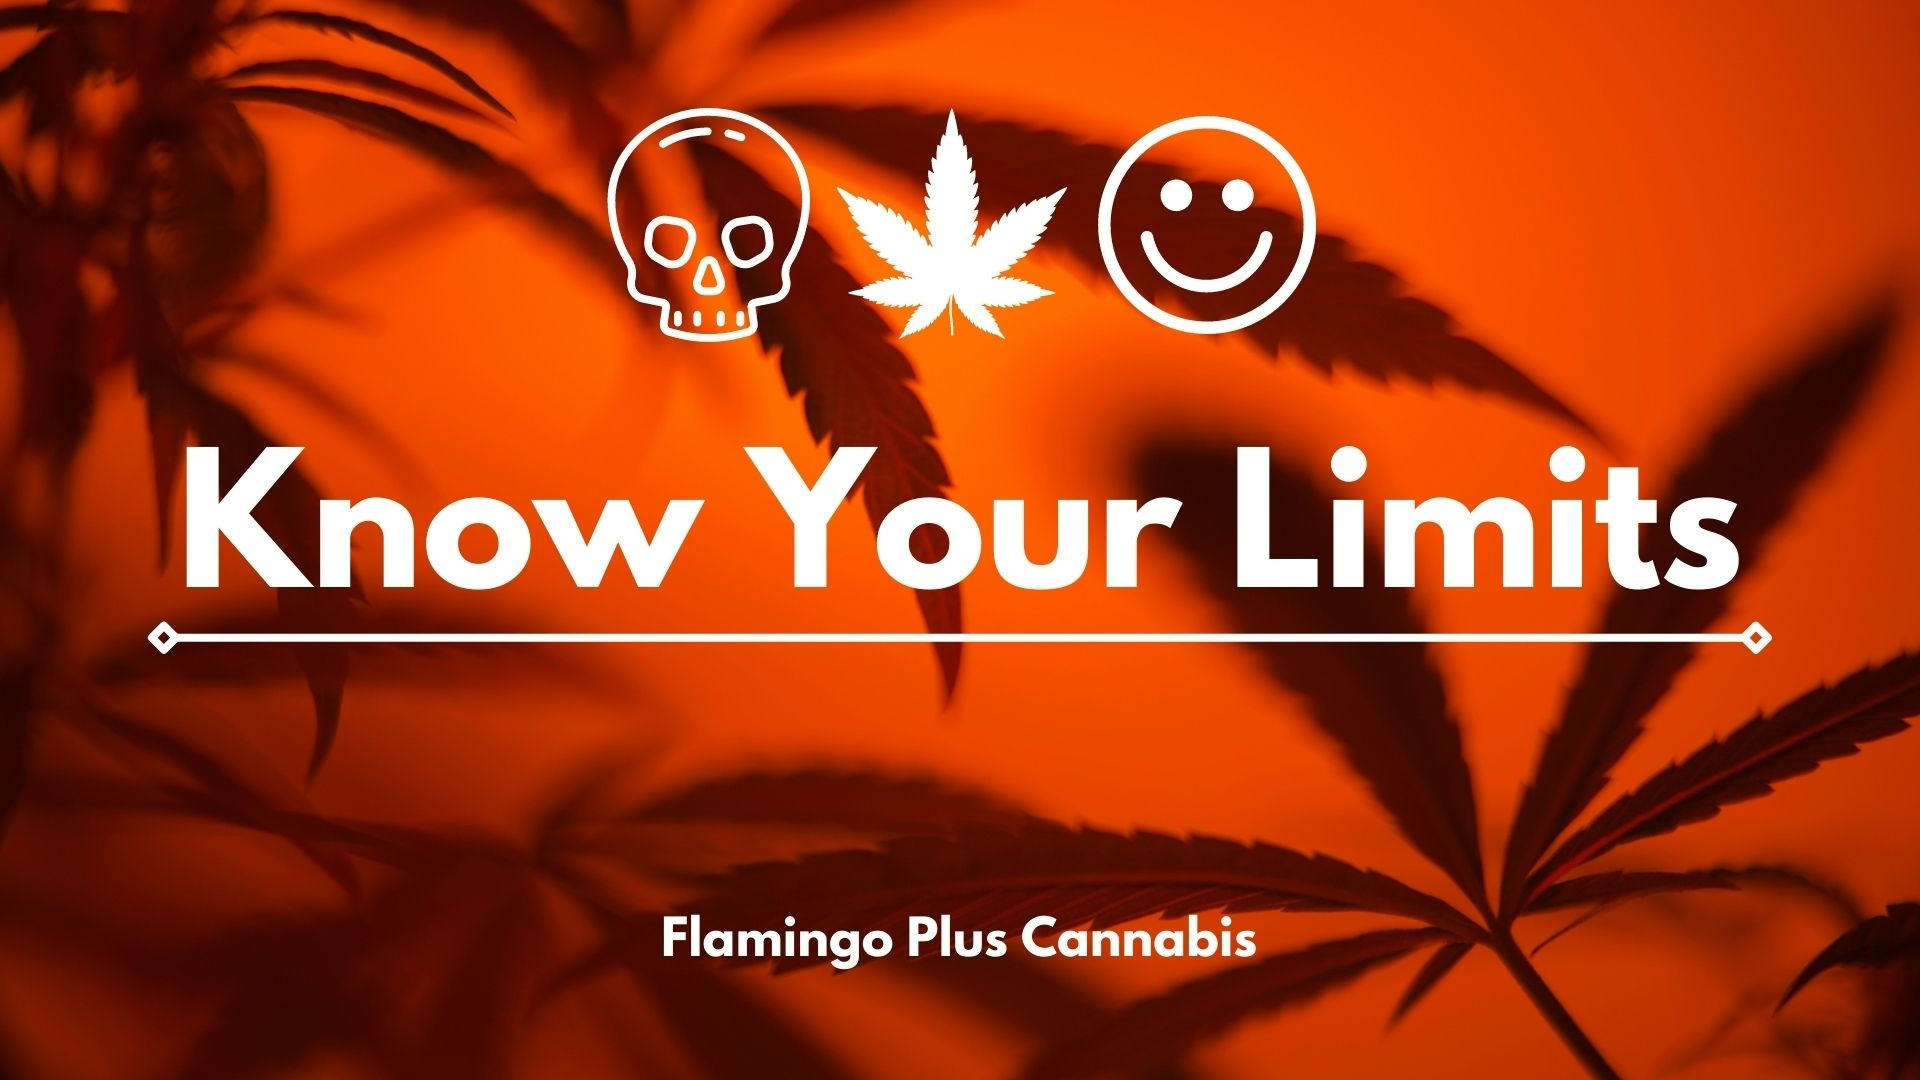 Know your limits. Cannabis